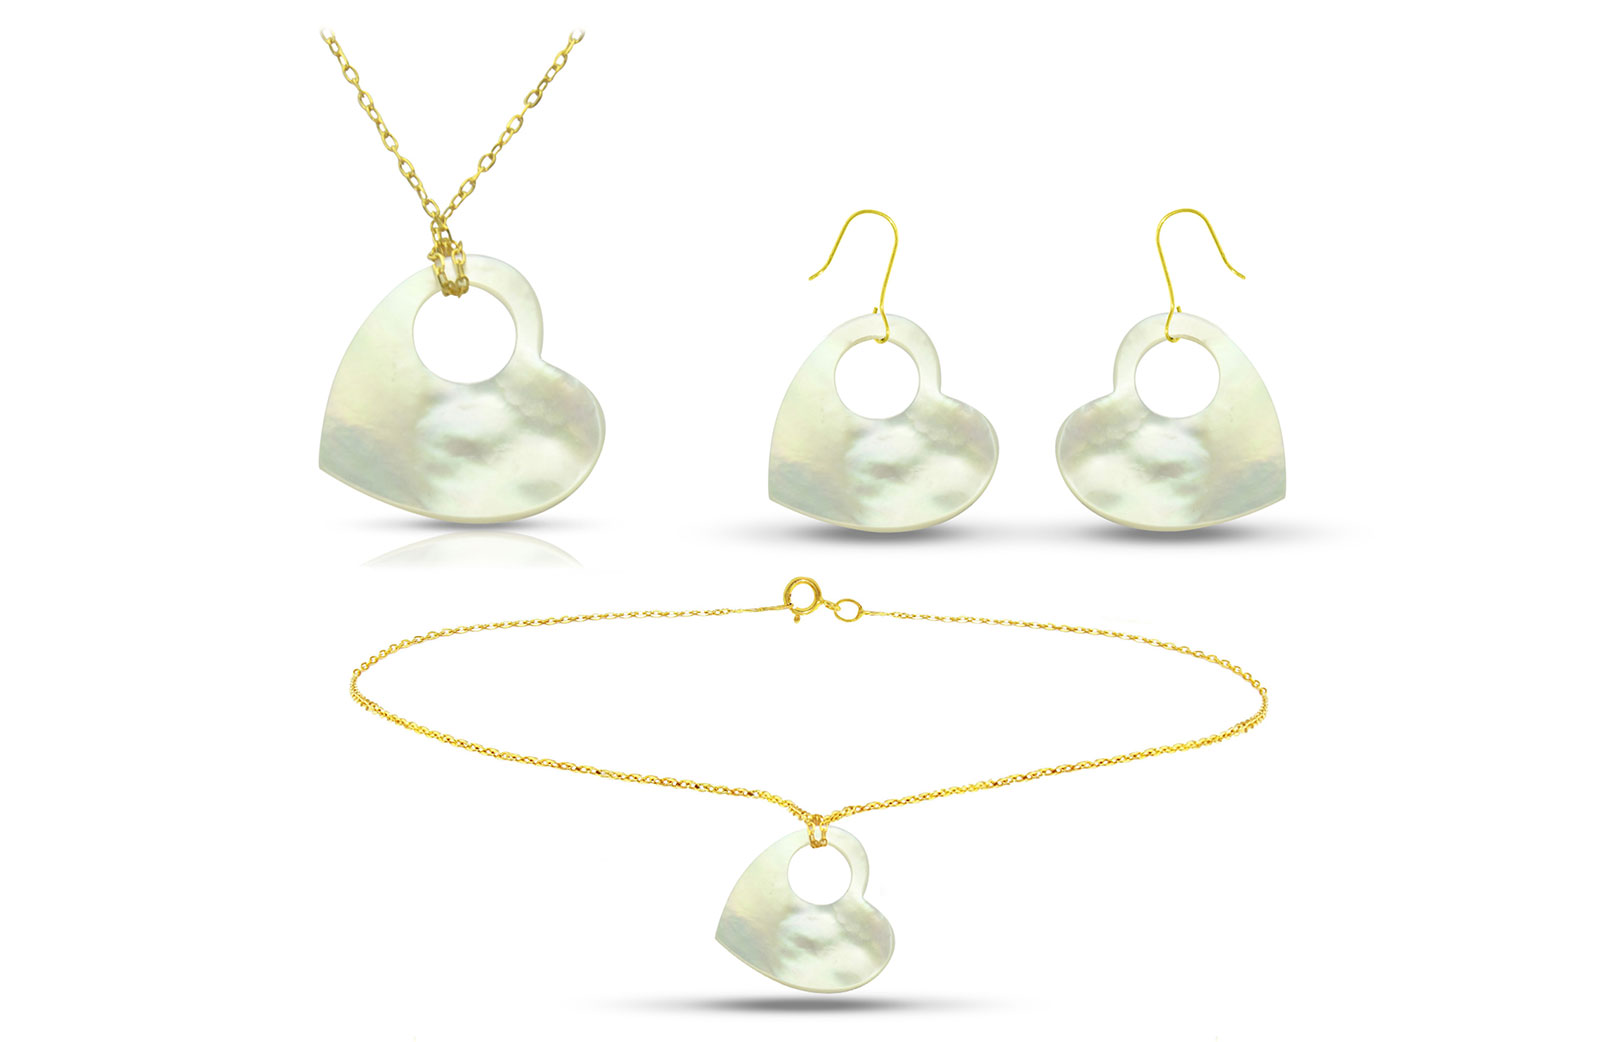 Vera Perla 18K Gold Heart with Hole Mother of Pearl Jewelry Set, 3 pcs